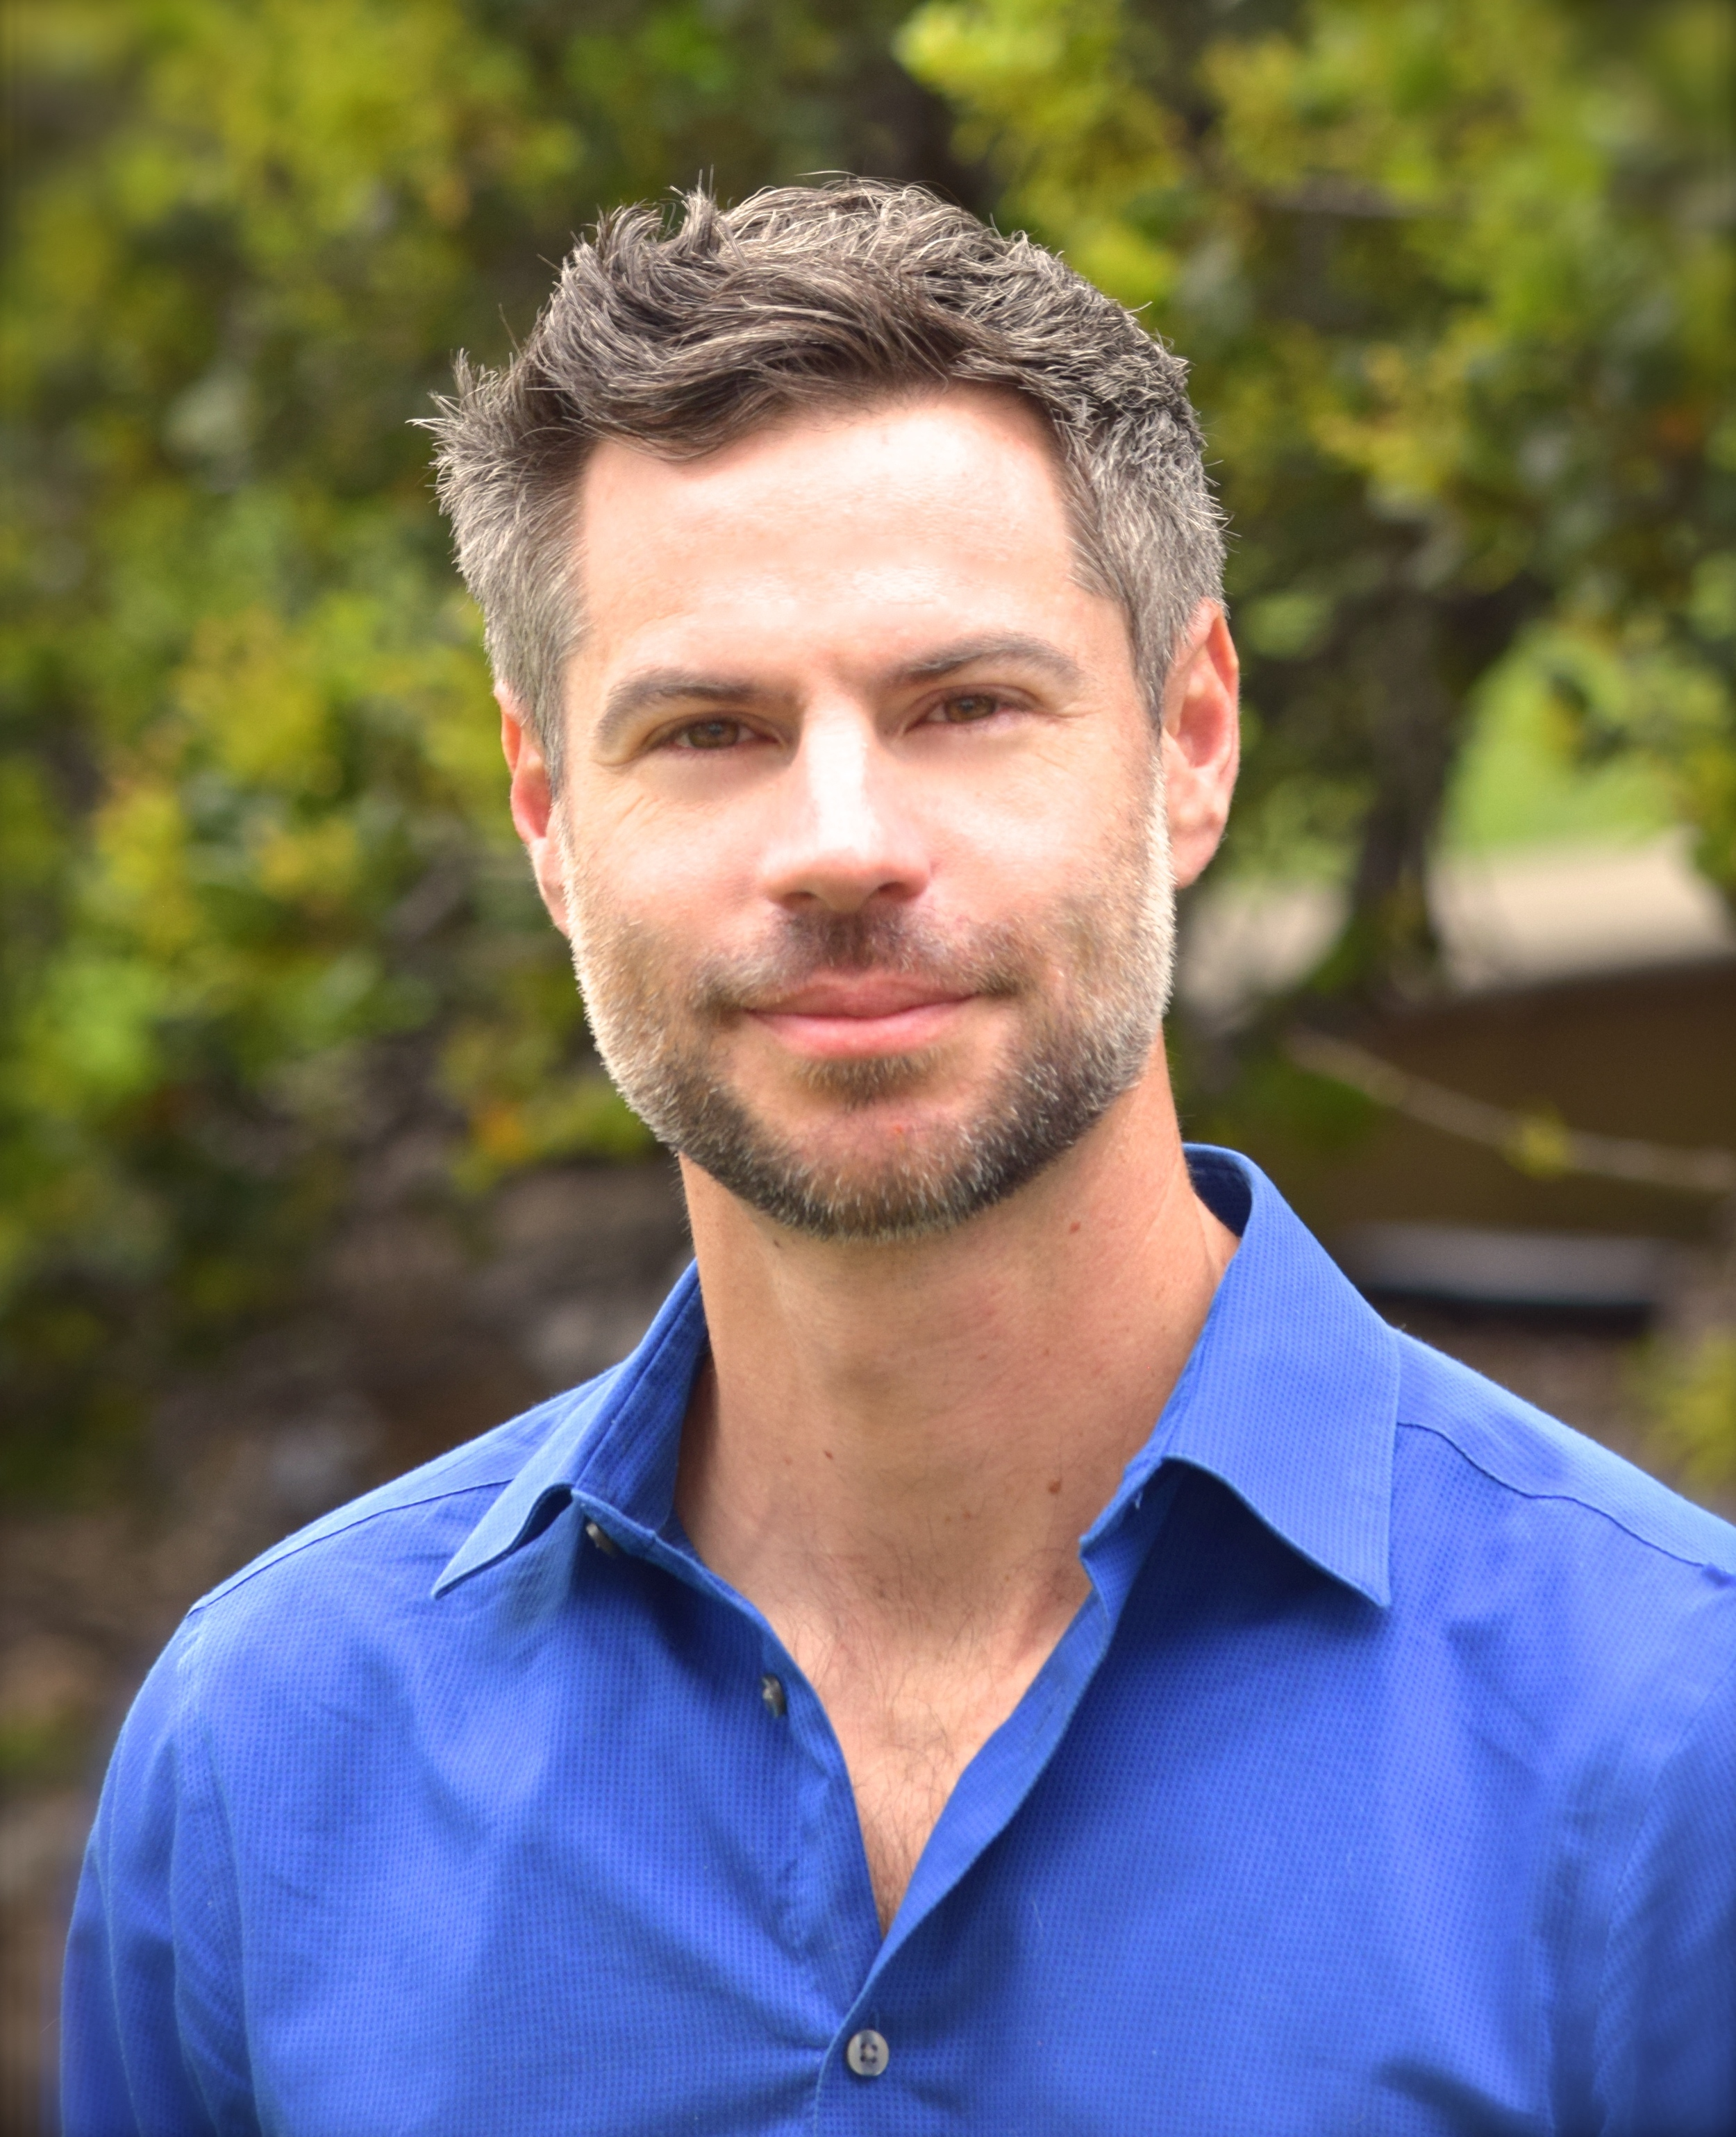 Time Mag's 'Hero of the Environment' Michael Shellenberger: 'Why Apocalyptic Claims About Climate Change Are Wrong' – Rips 'exaggerations by activists, journalists, & scientists'